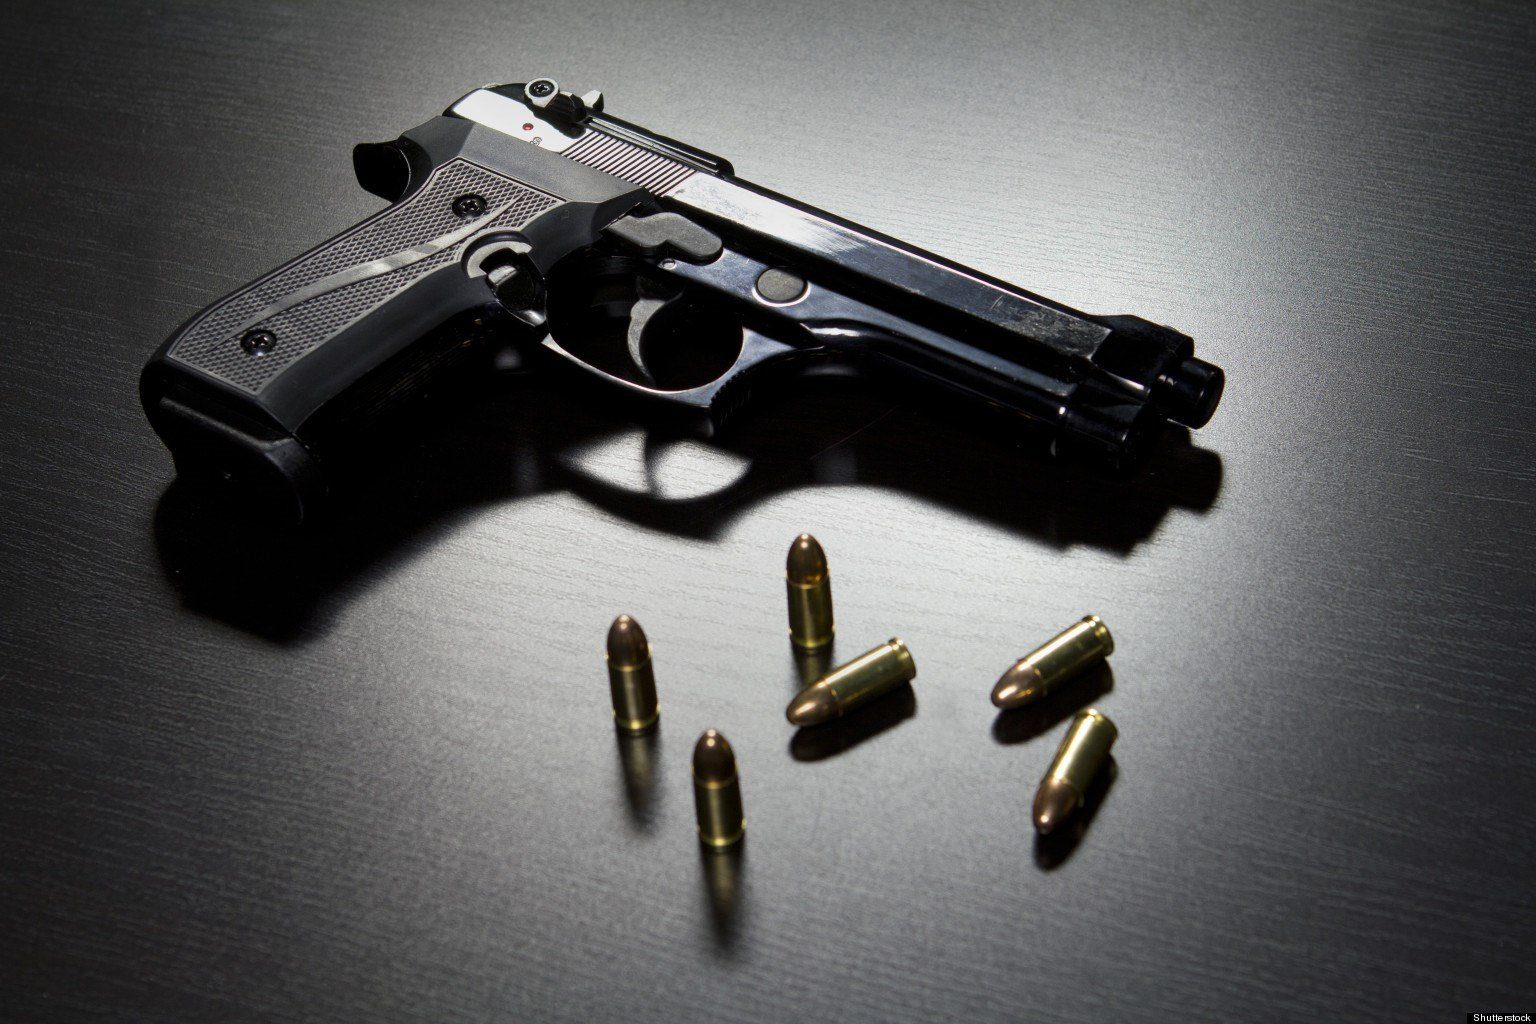 The state's three largest universities will be allowed to ban guns at large sporting events beginning in July. (KCTV)